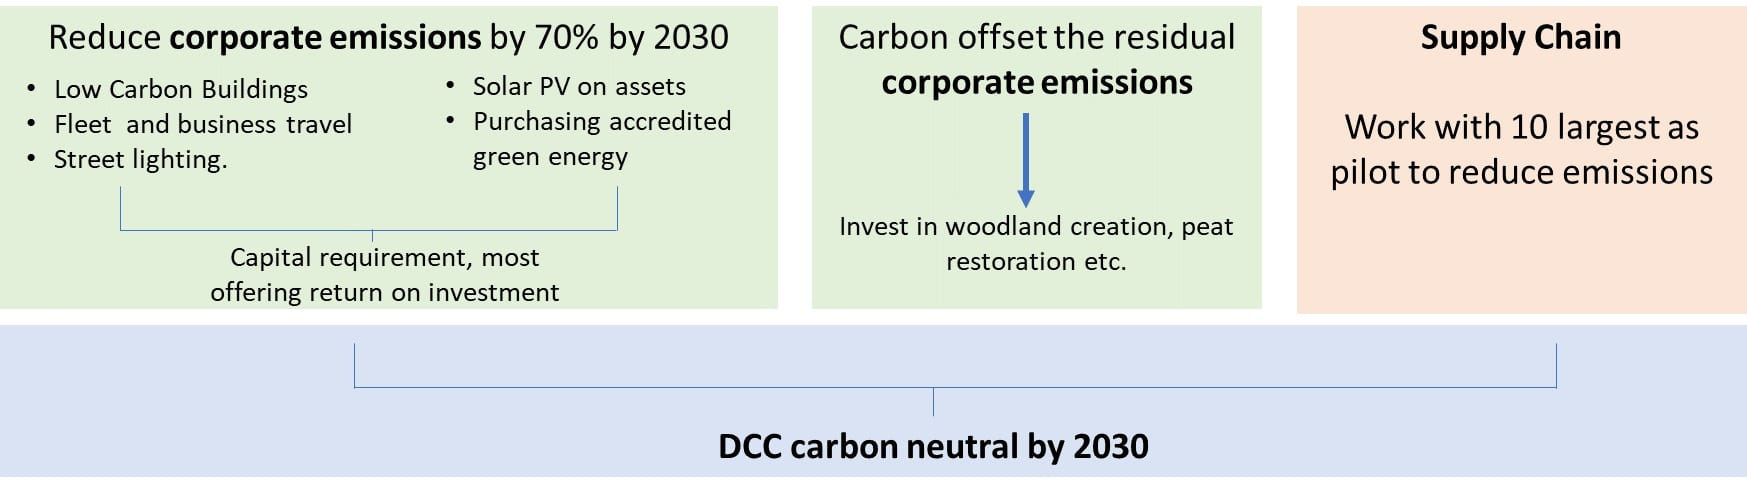 Chart showing aim to reduce corporate emissions by 70% by 2030 with details on low carbon buildings, travel, street lighting, solar pv, purchasing accredited green energy,